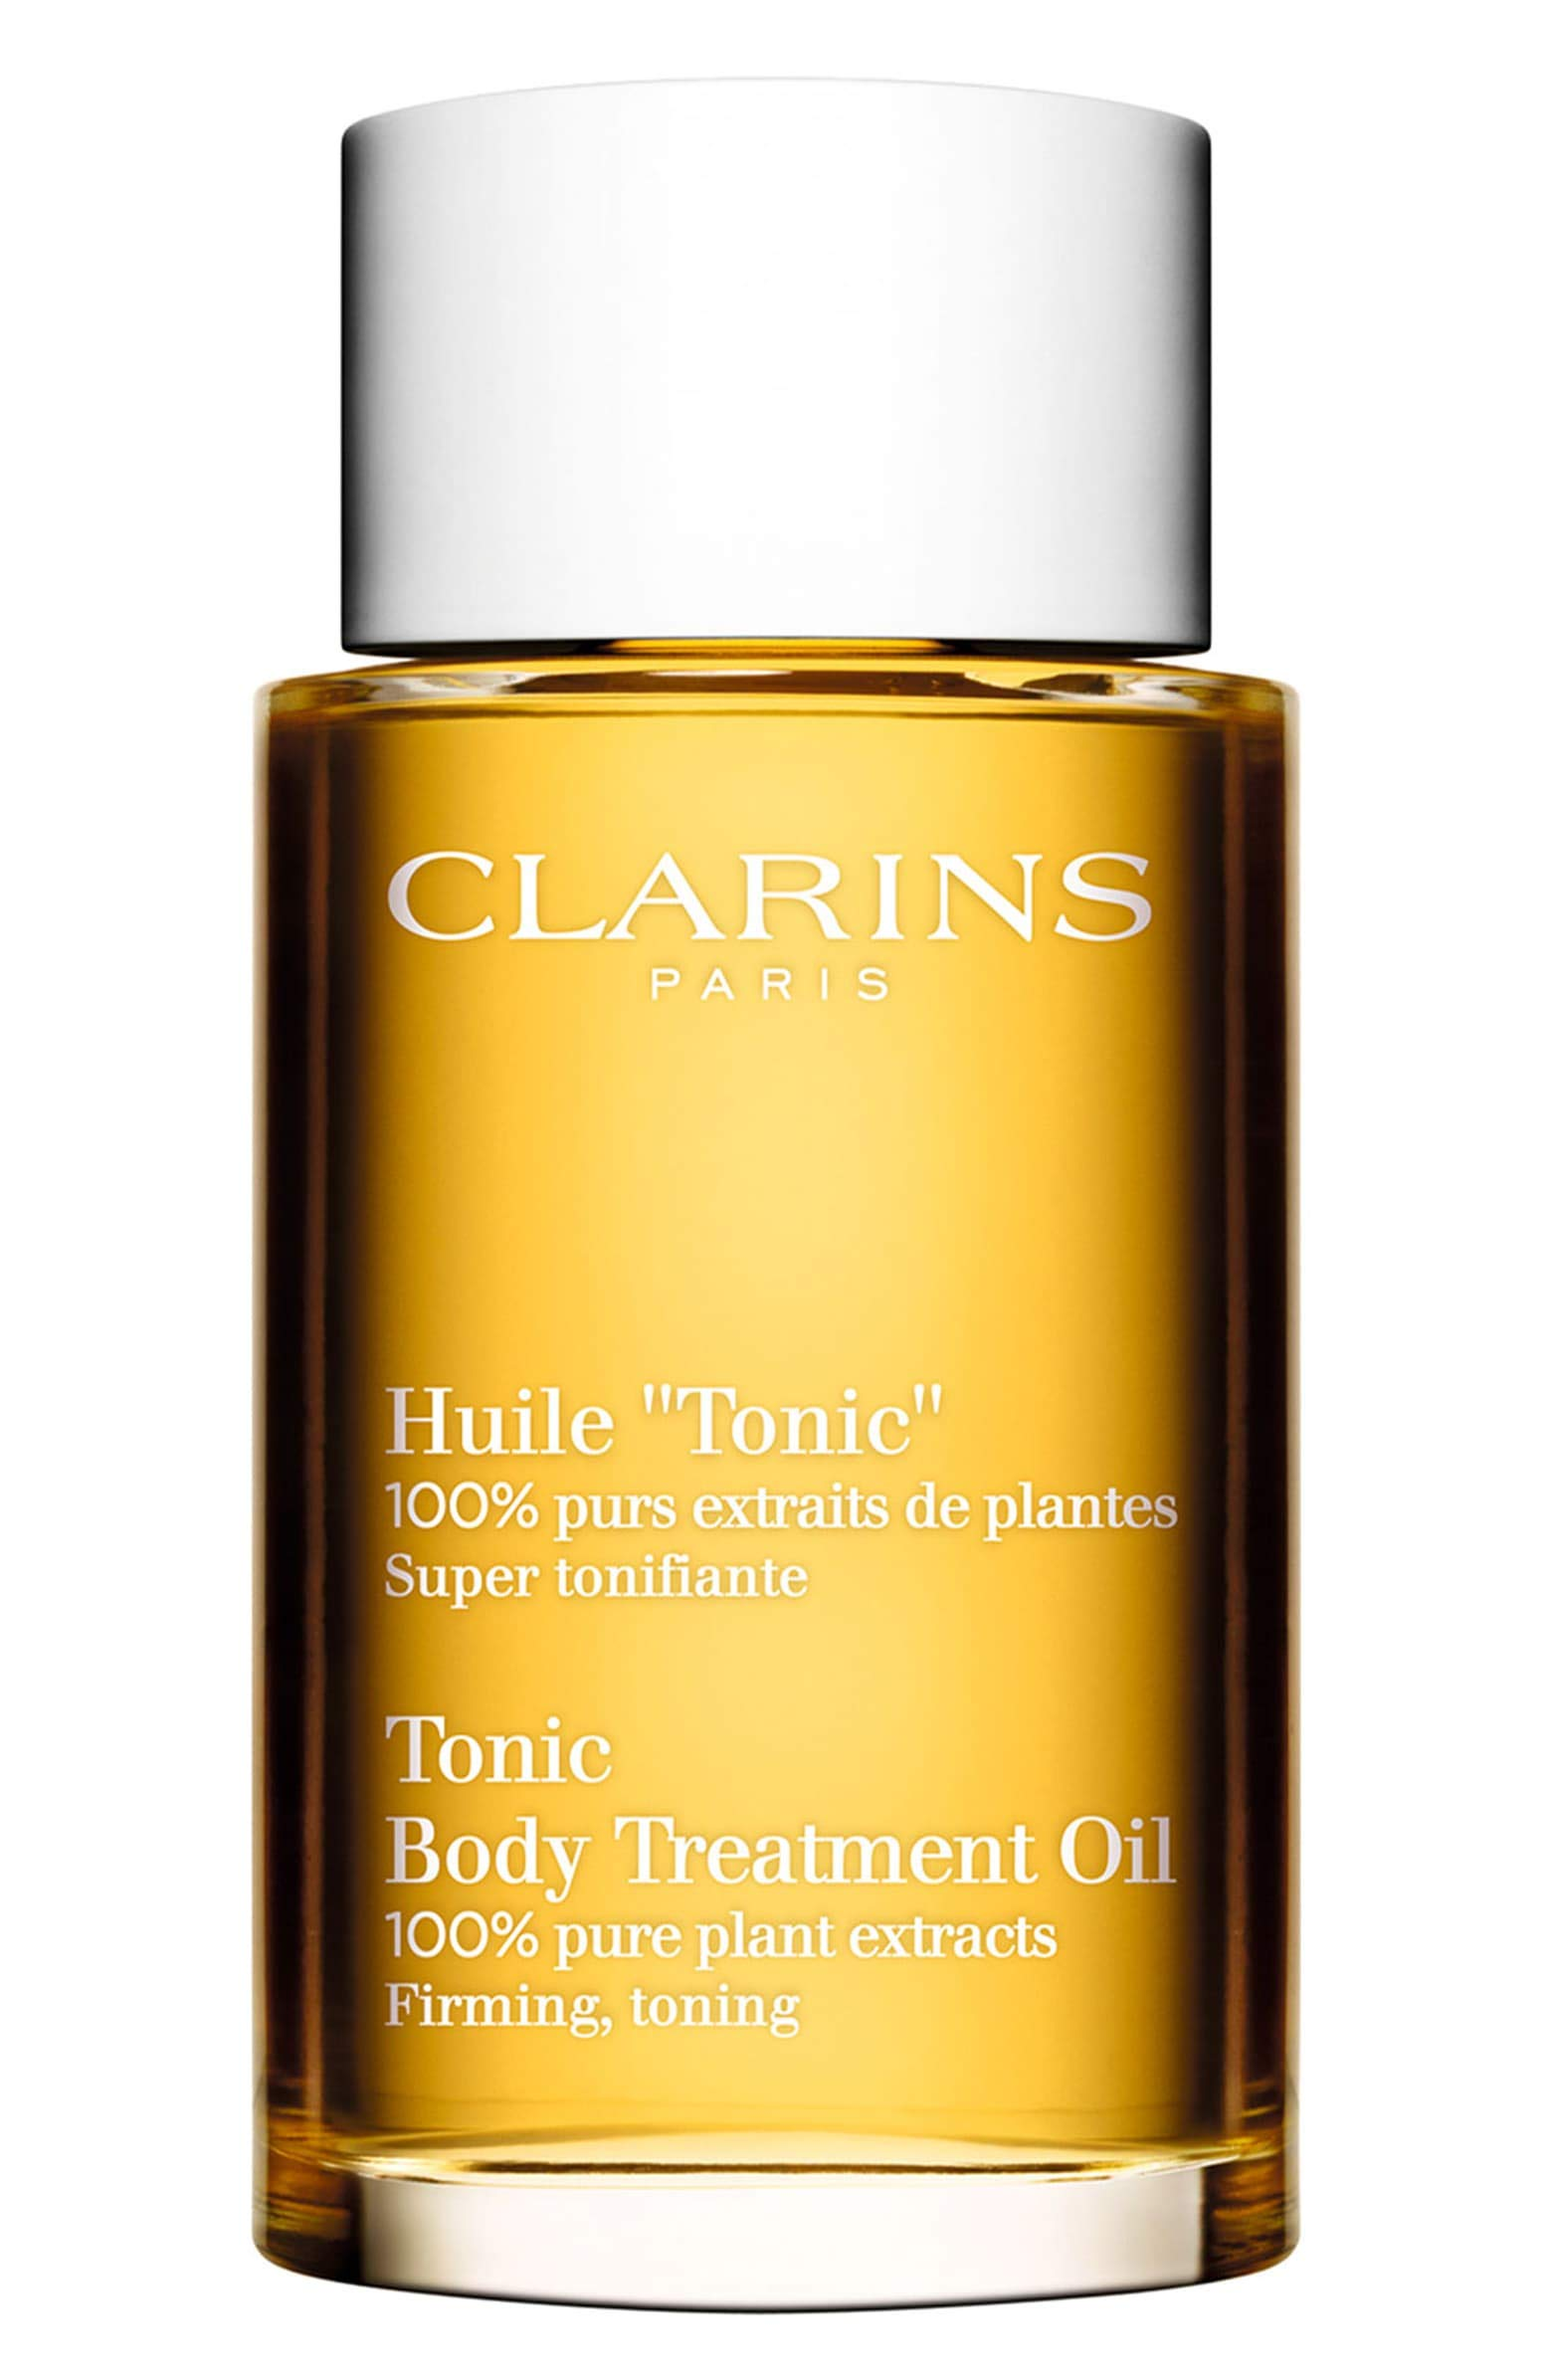 Clarins Body Treatment Oil Tonic, 3.4 Fl Oz